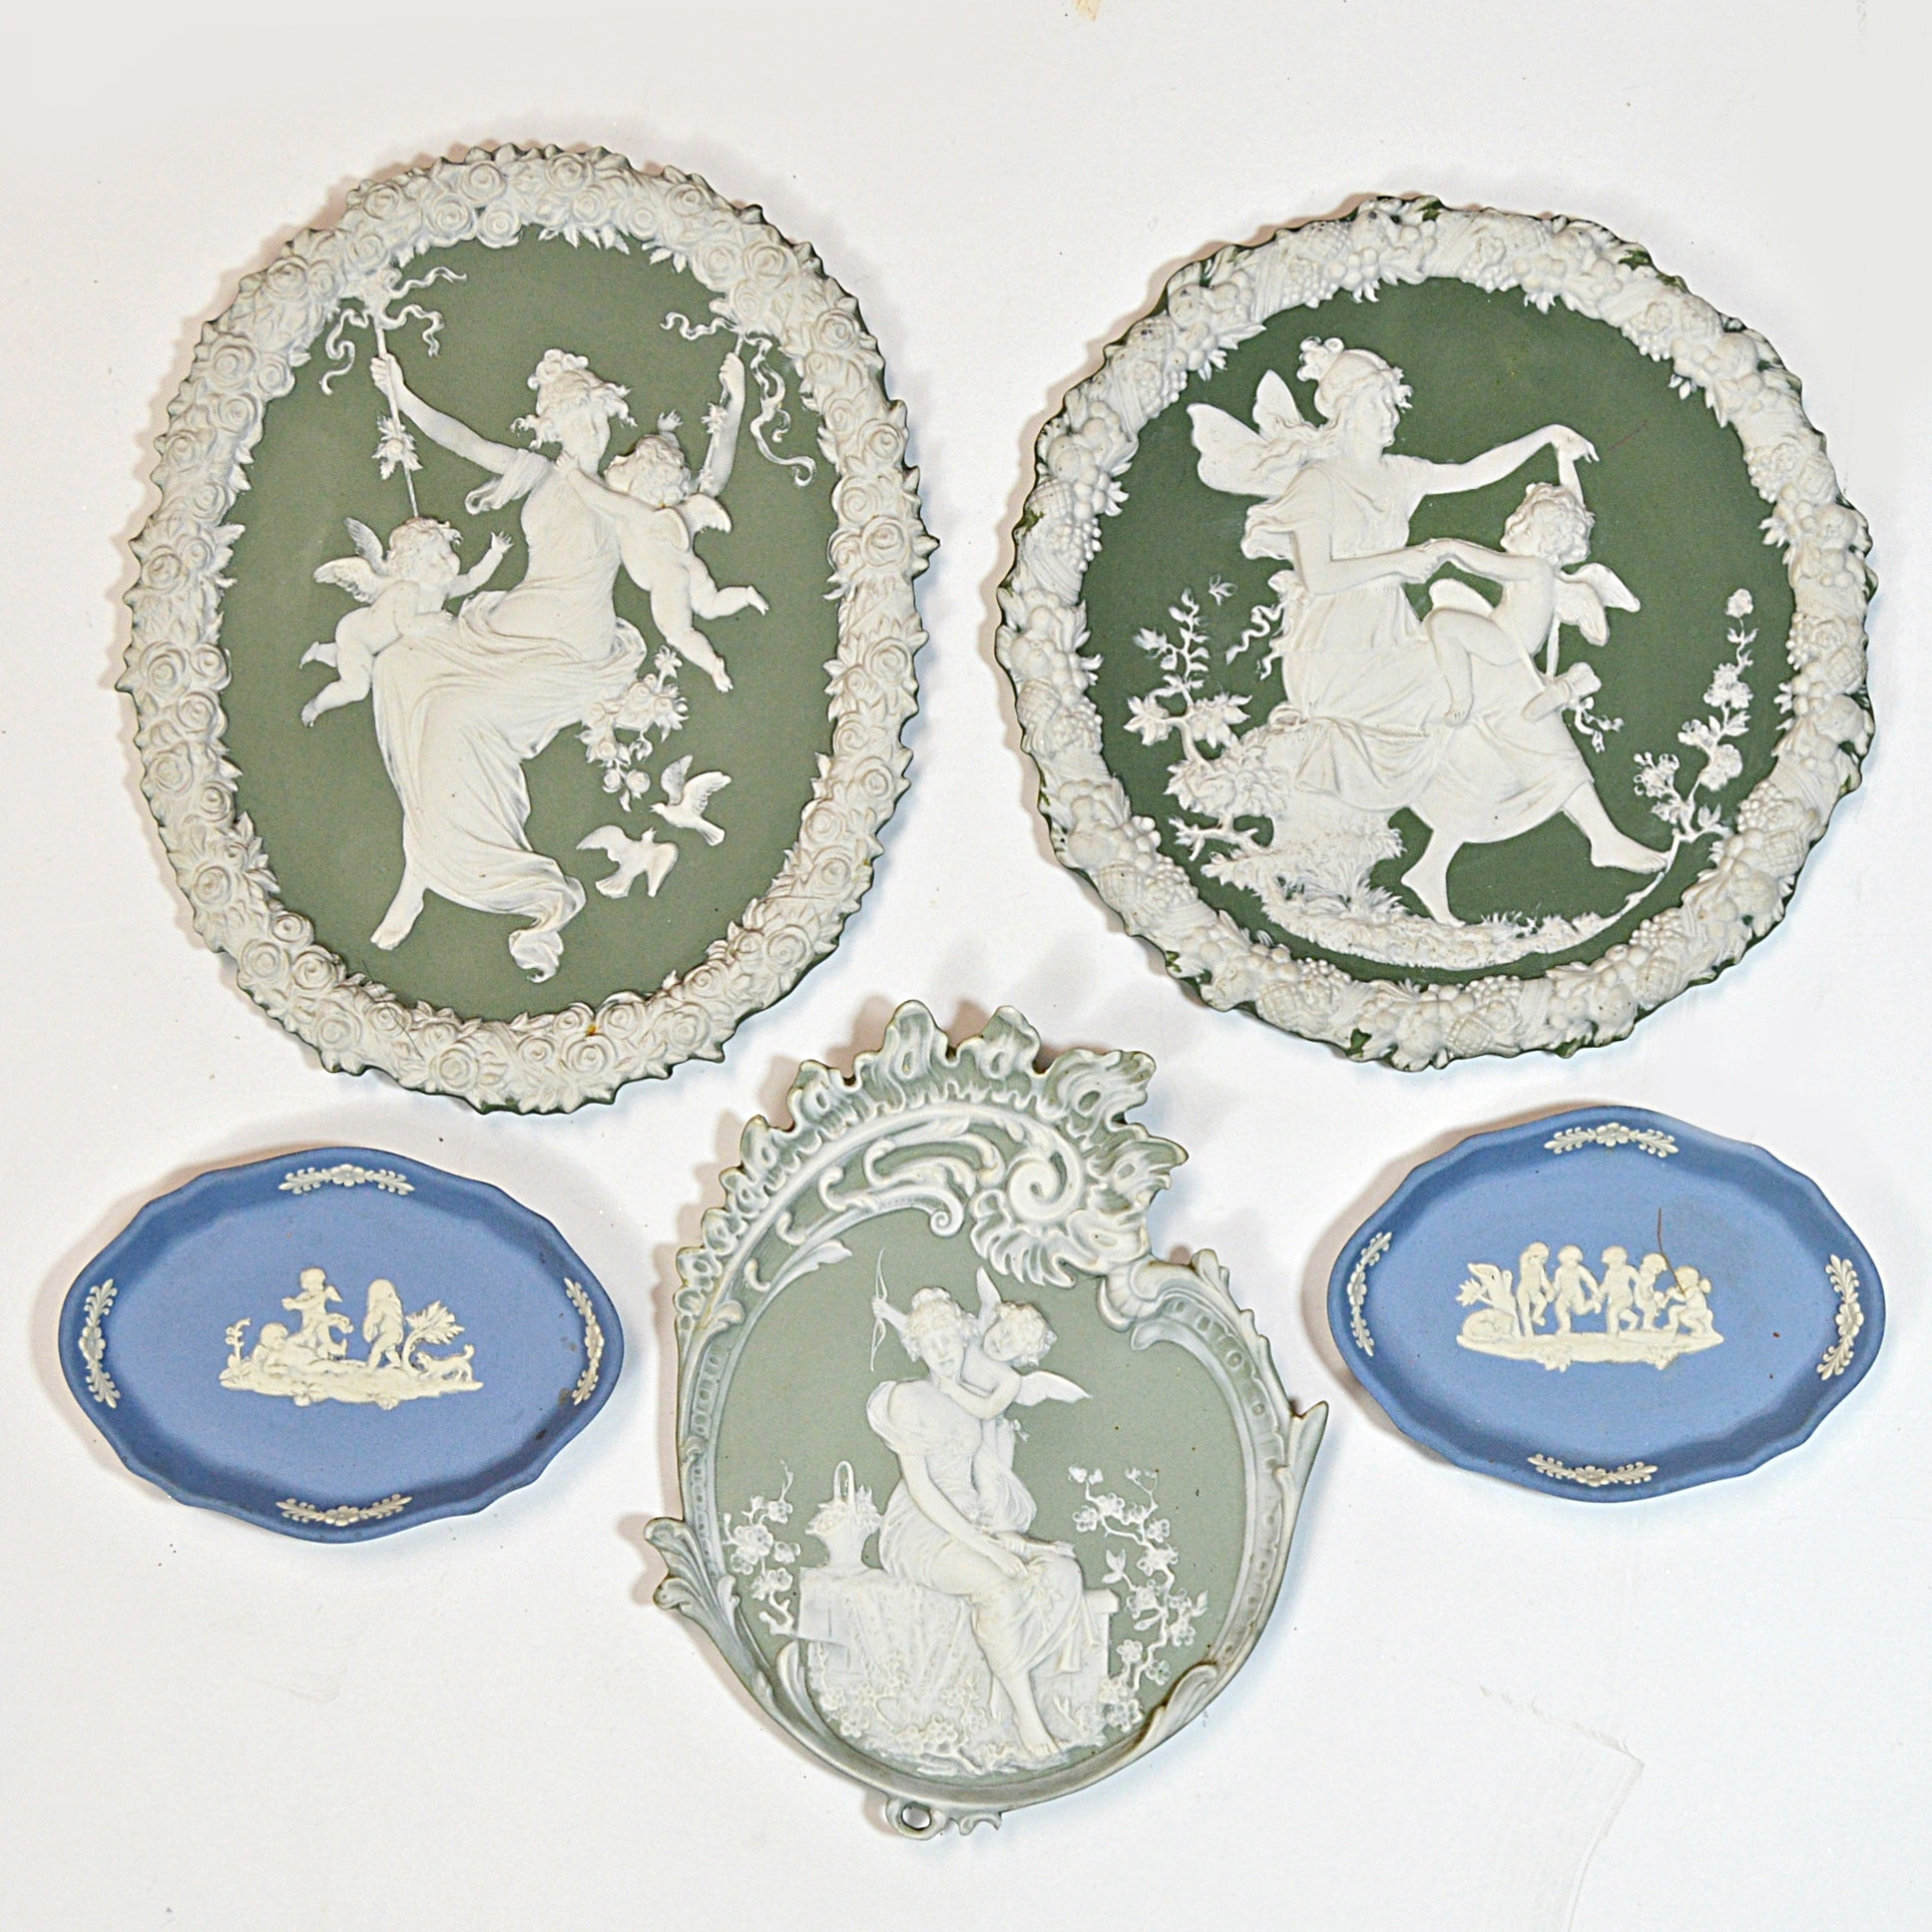 Vintage Jasperware Plaques and Dishes including Wedgwood